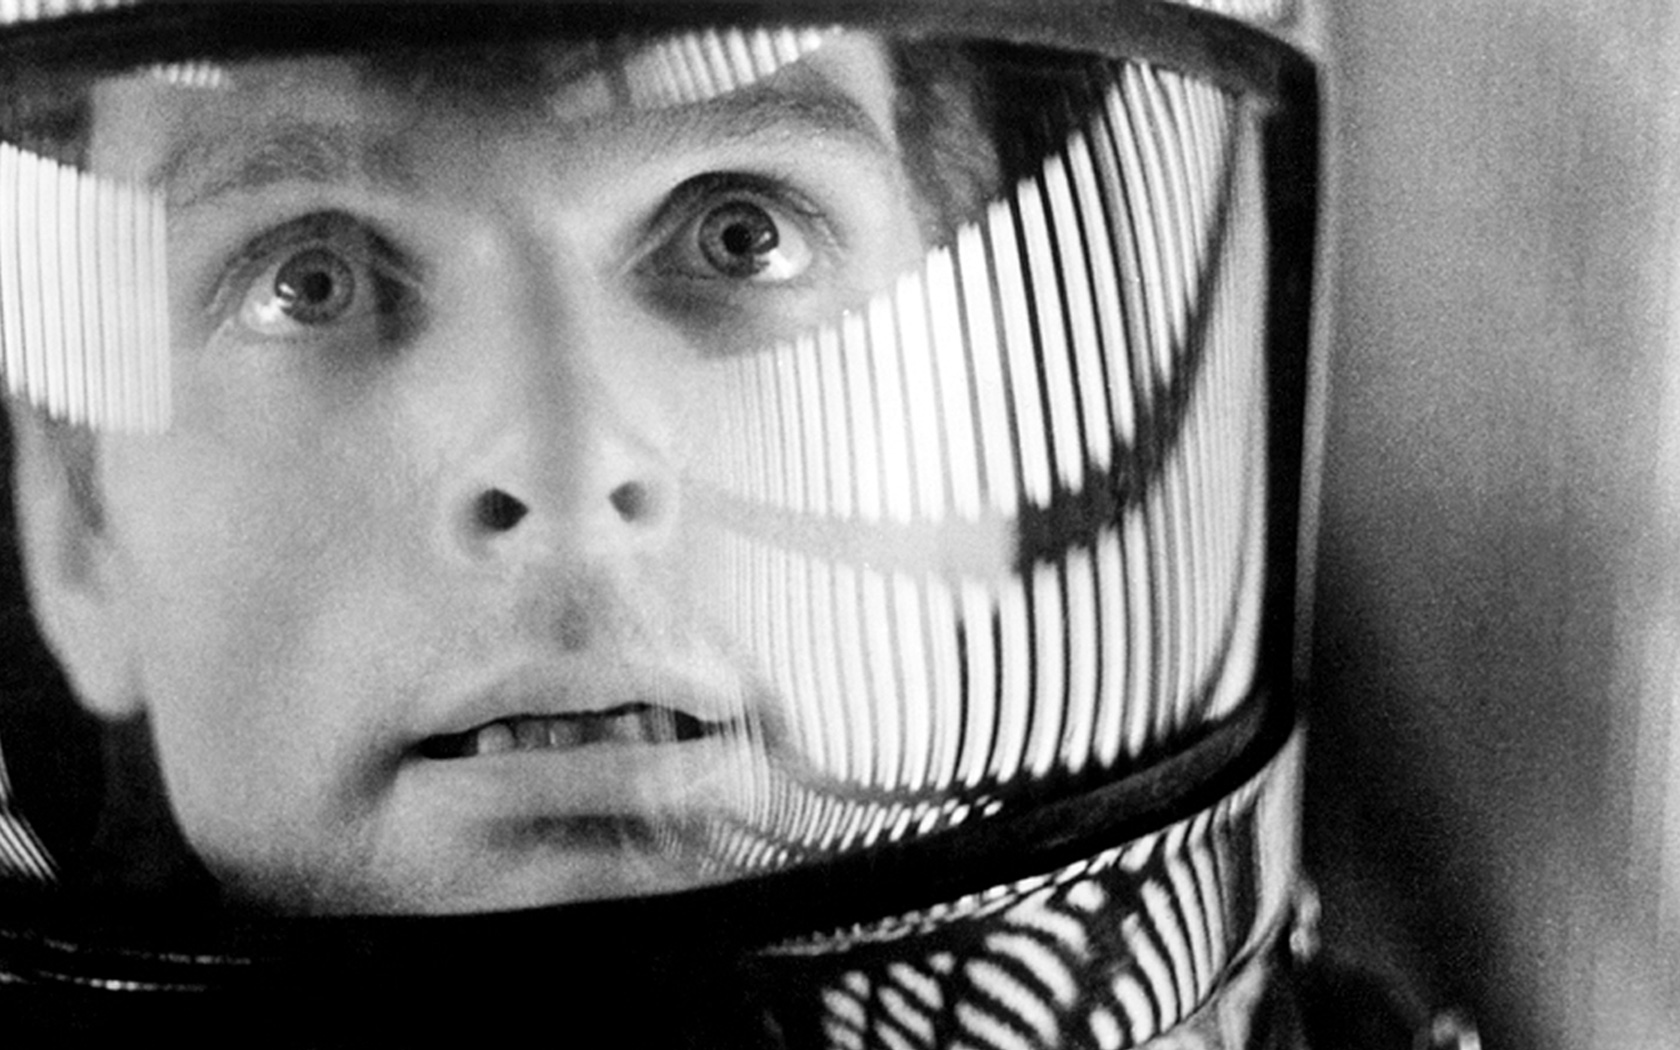 Films - 2001: A Space Odyssey  2001 A Space Odyssey Wallpaper